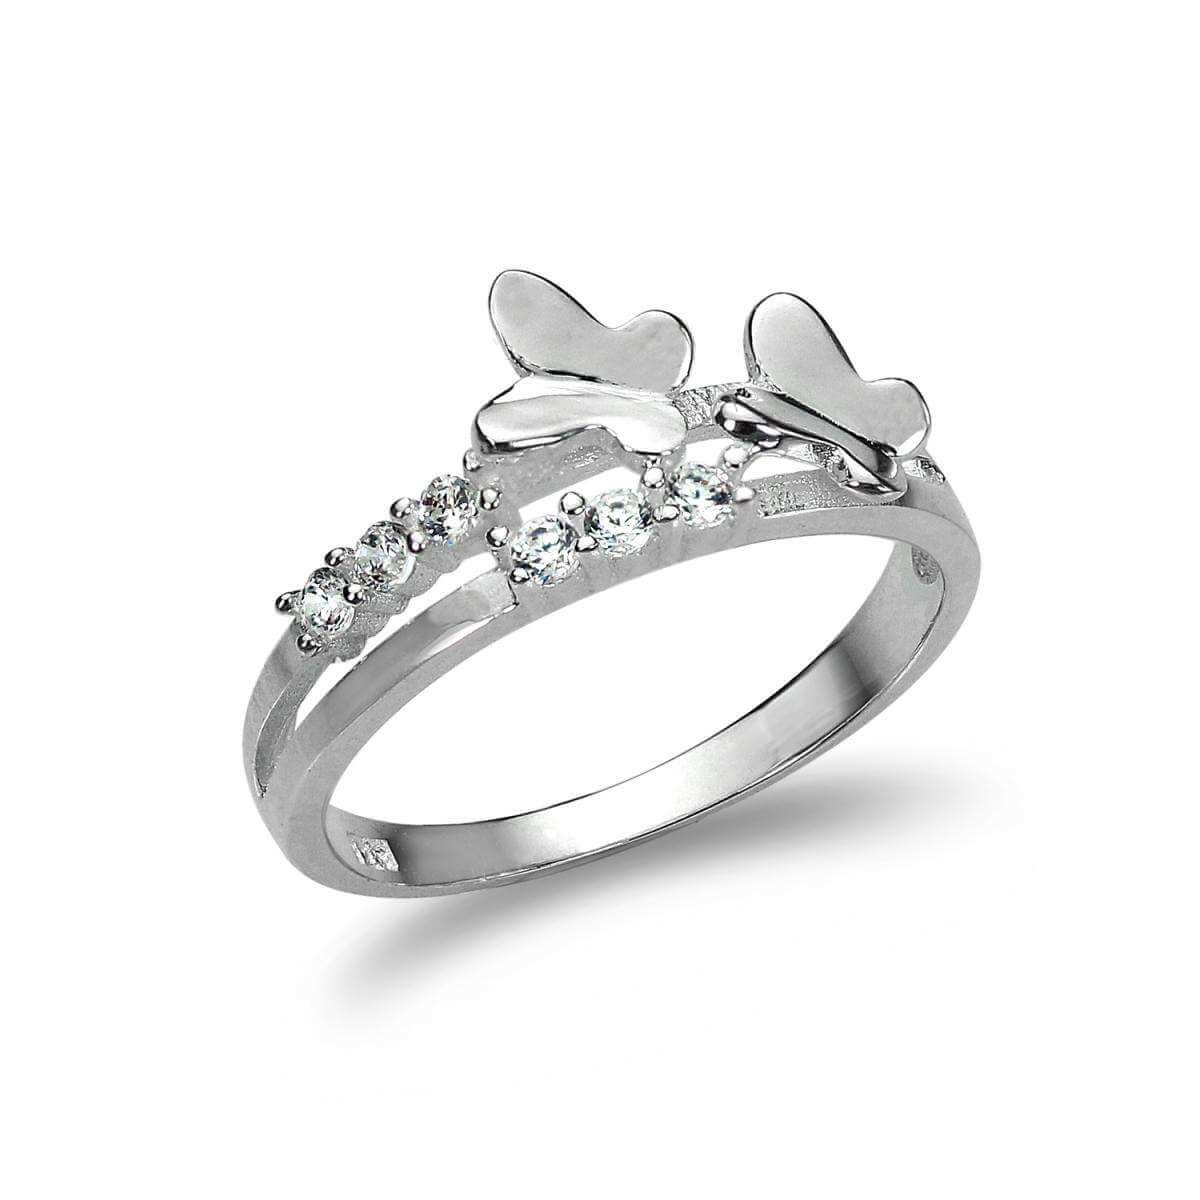 Sterling Silver Split Band Ring with CZ Crystal & Butterflies - UK Size J-U